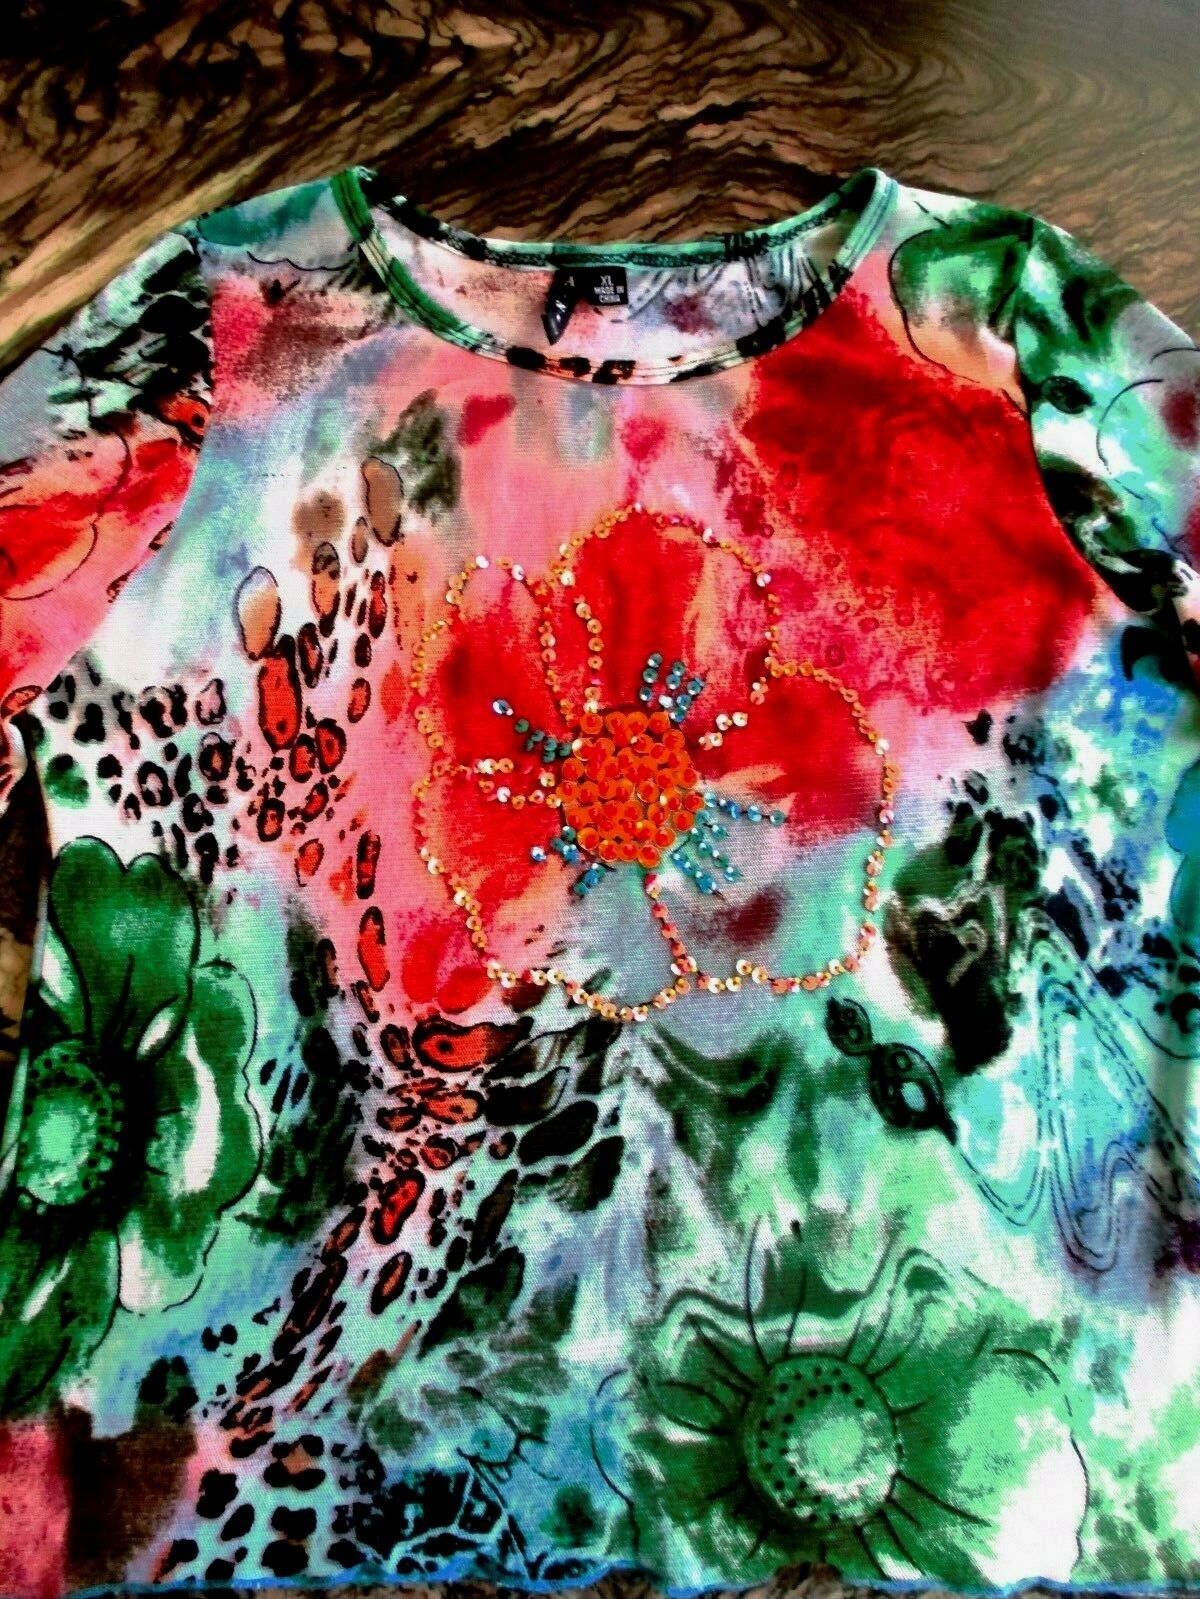 AZI   TOP BLOUSE LONG SLEEVE  MULTI-COLOR TROPICAL EMBELLISHED  SIZE XL NWOT